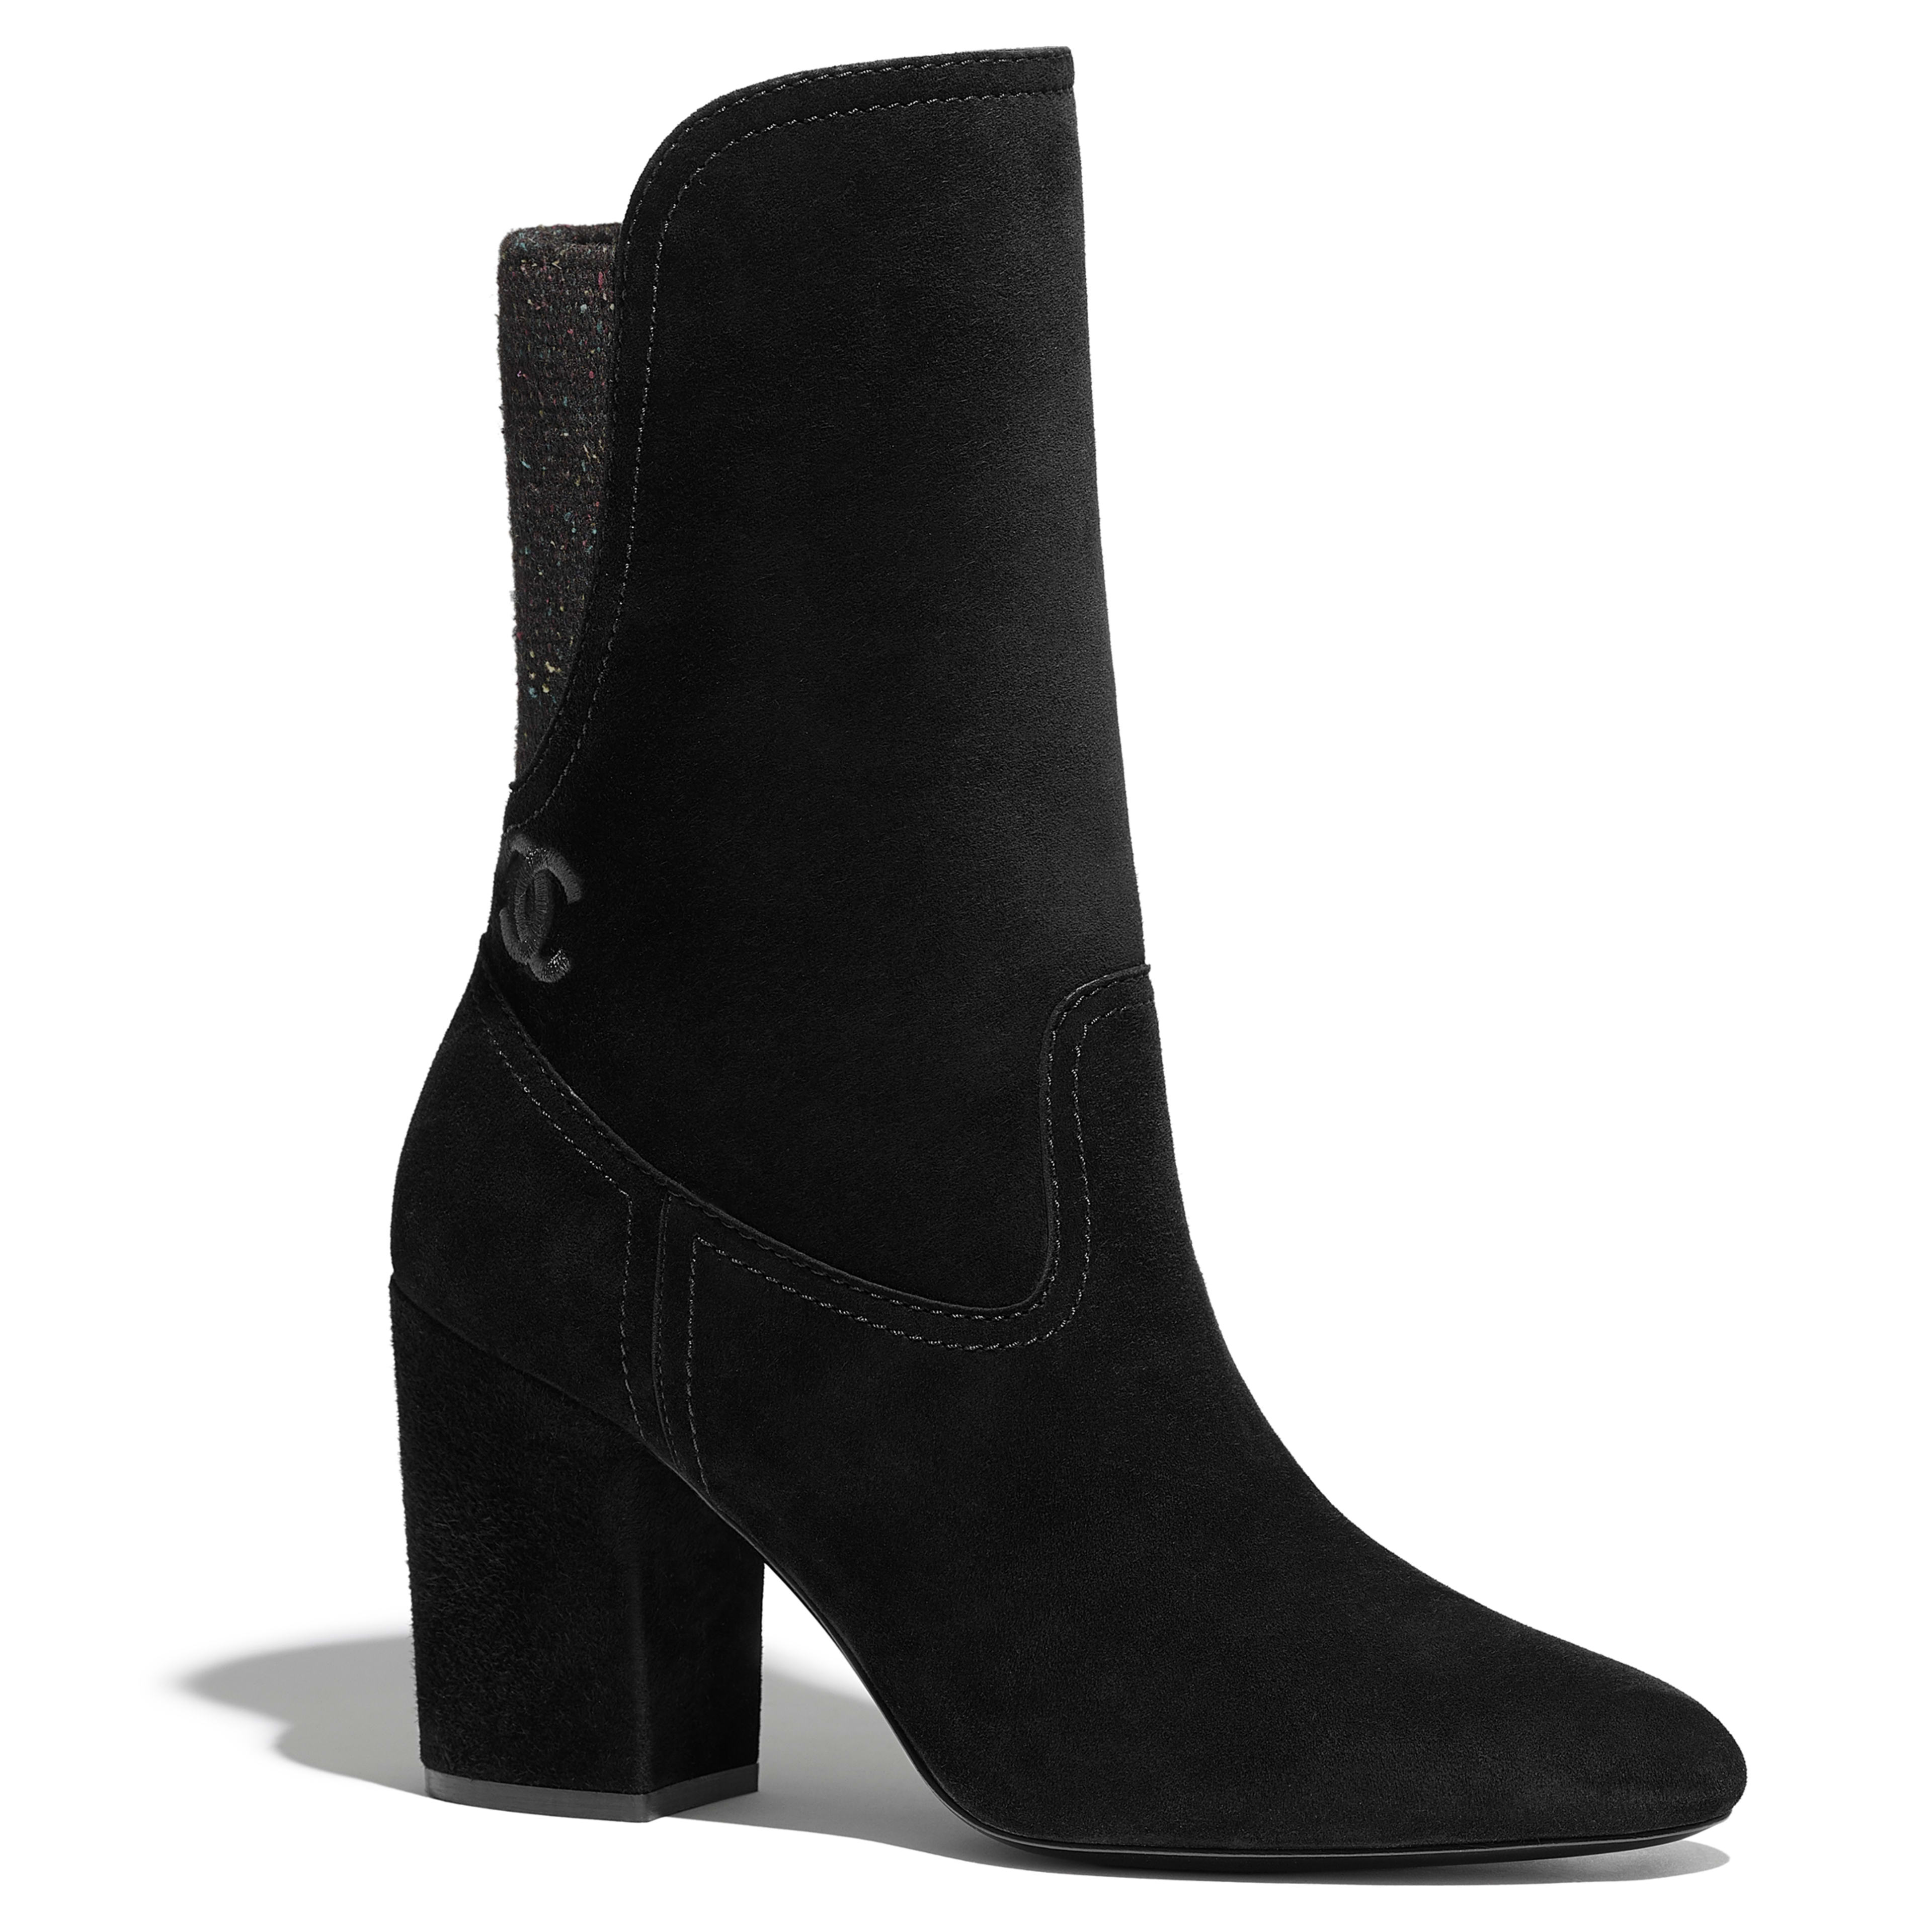 Ankle Boots - Black - Velvet Calfskin & Mixed Fibers - Default view - see full sized version